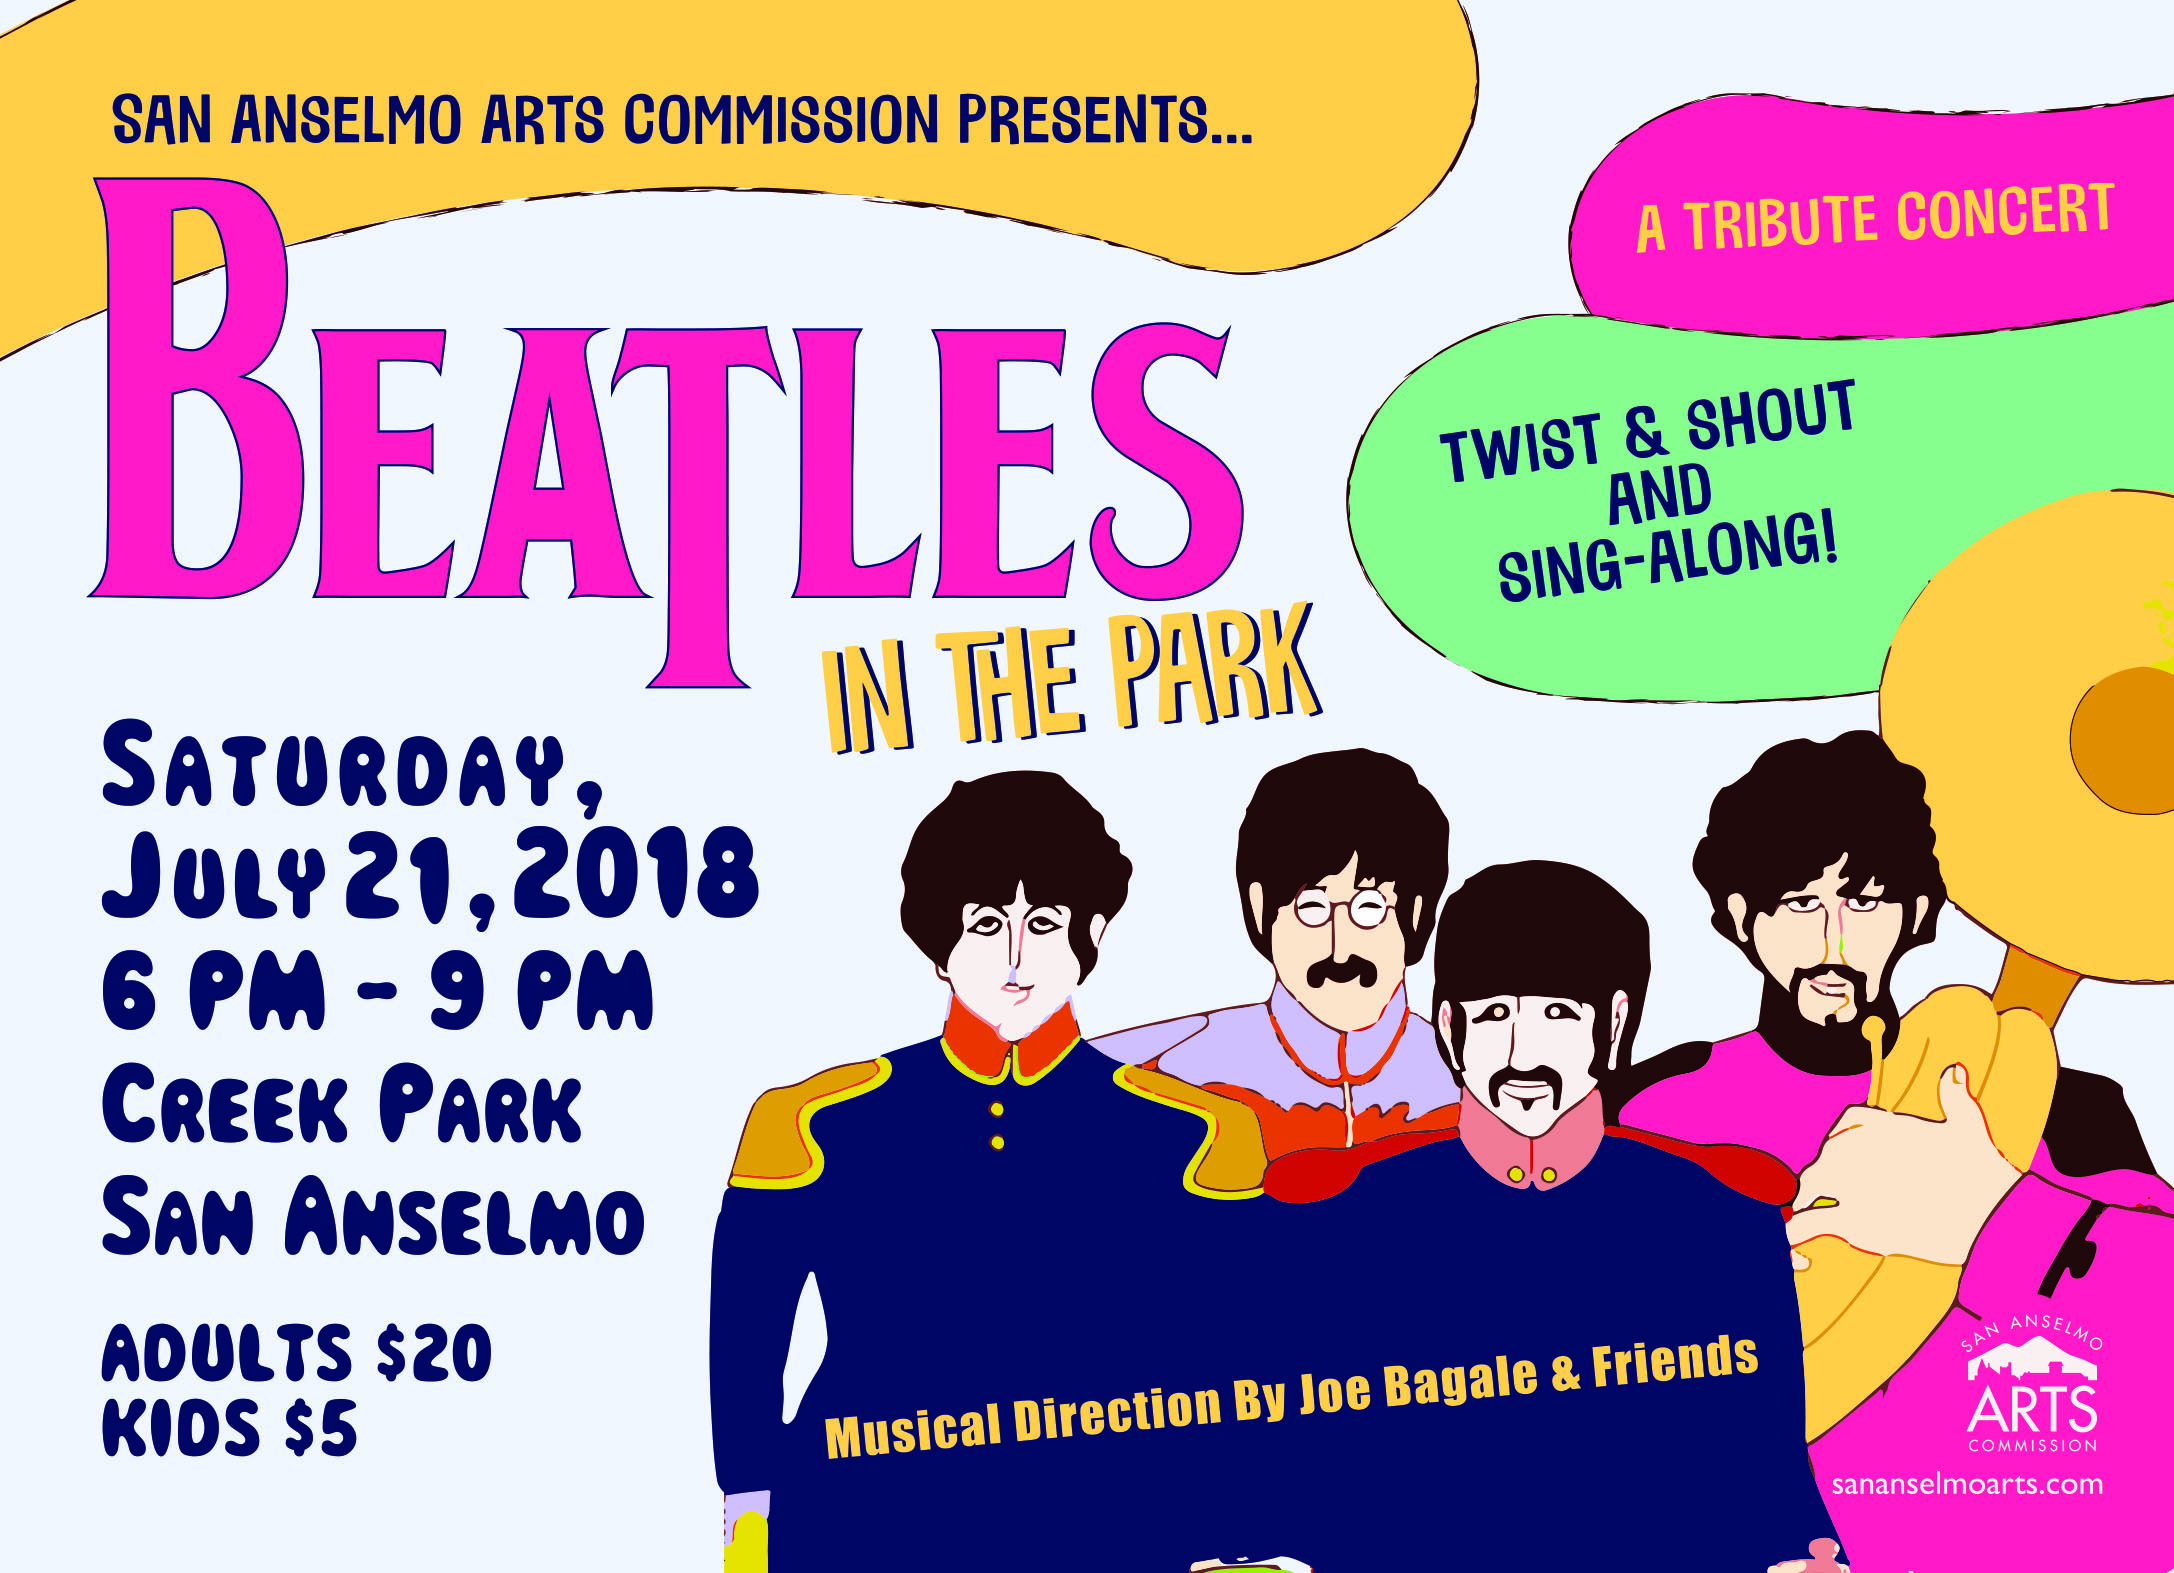 BEATLES_PC_2018_PRINT-1.jpg